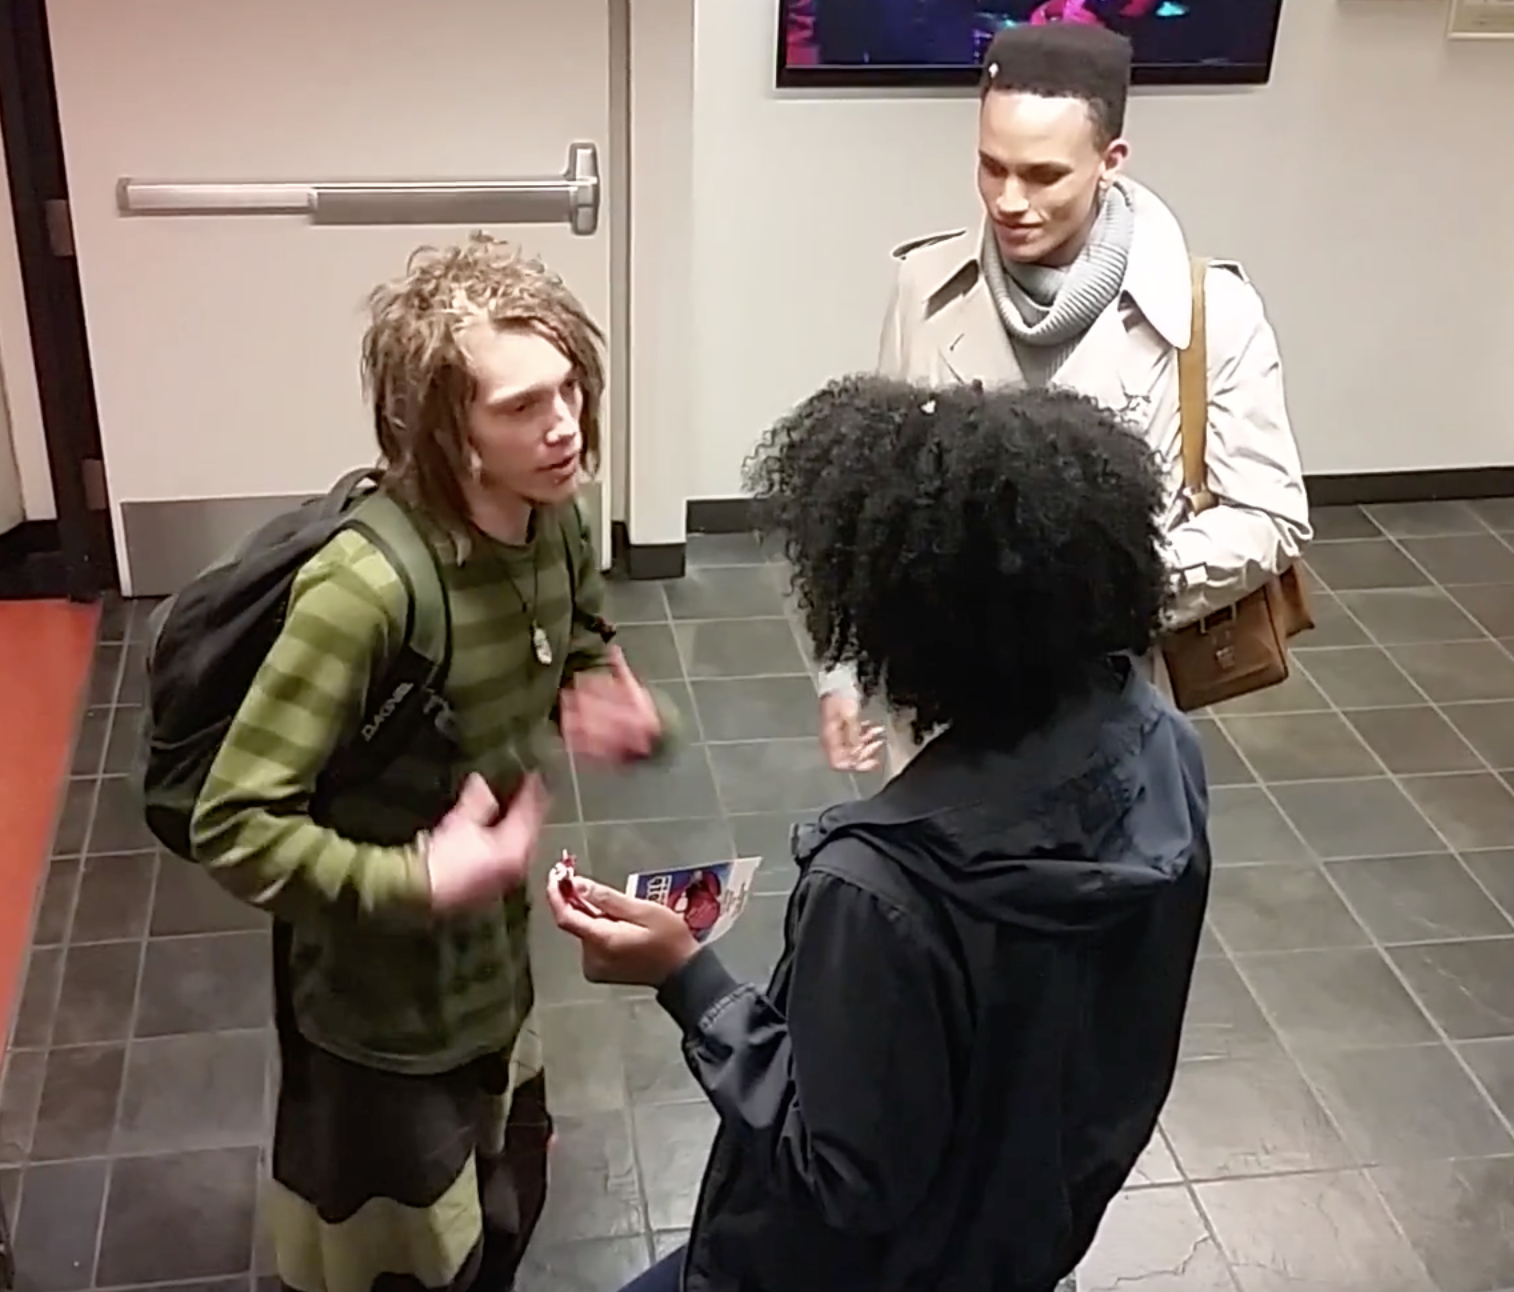 Black Woman Accosts White Man For Having Dreads